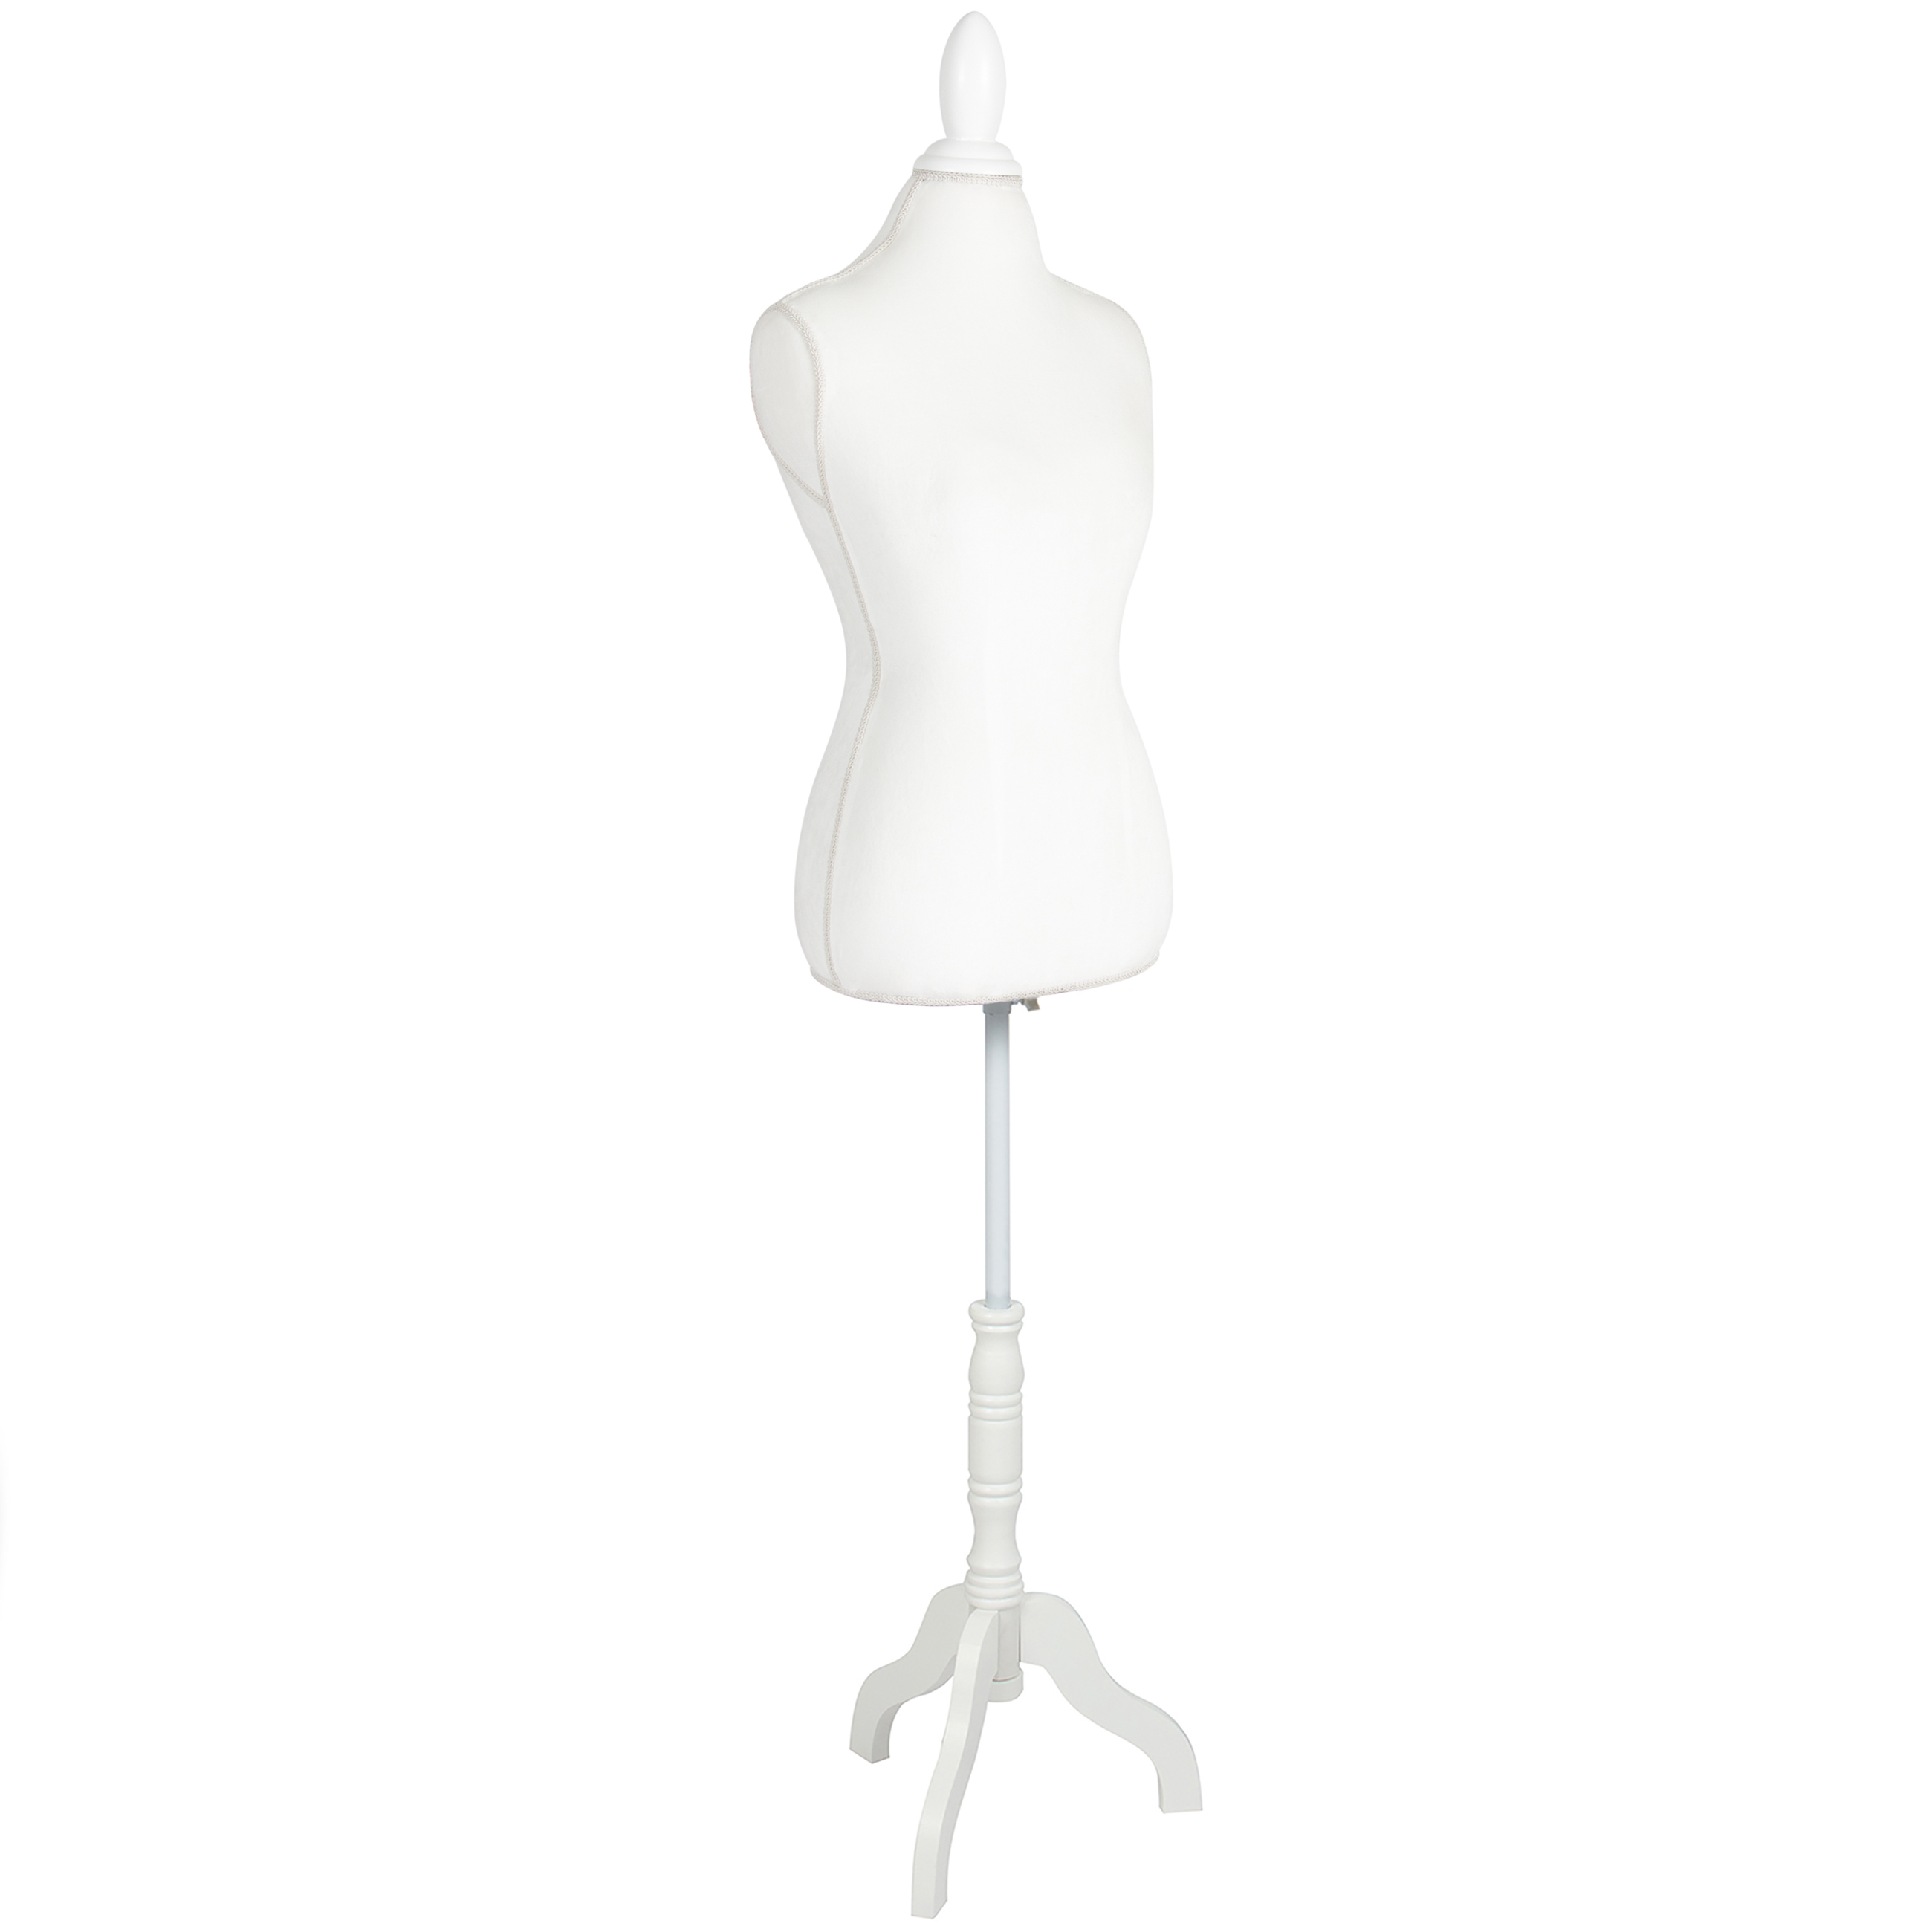 White Female Mannequin Torso Dress Form Display W White Tripod Stand